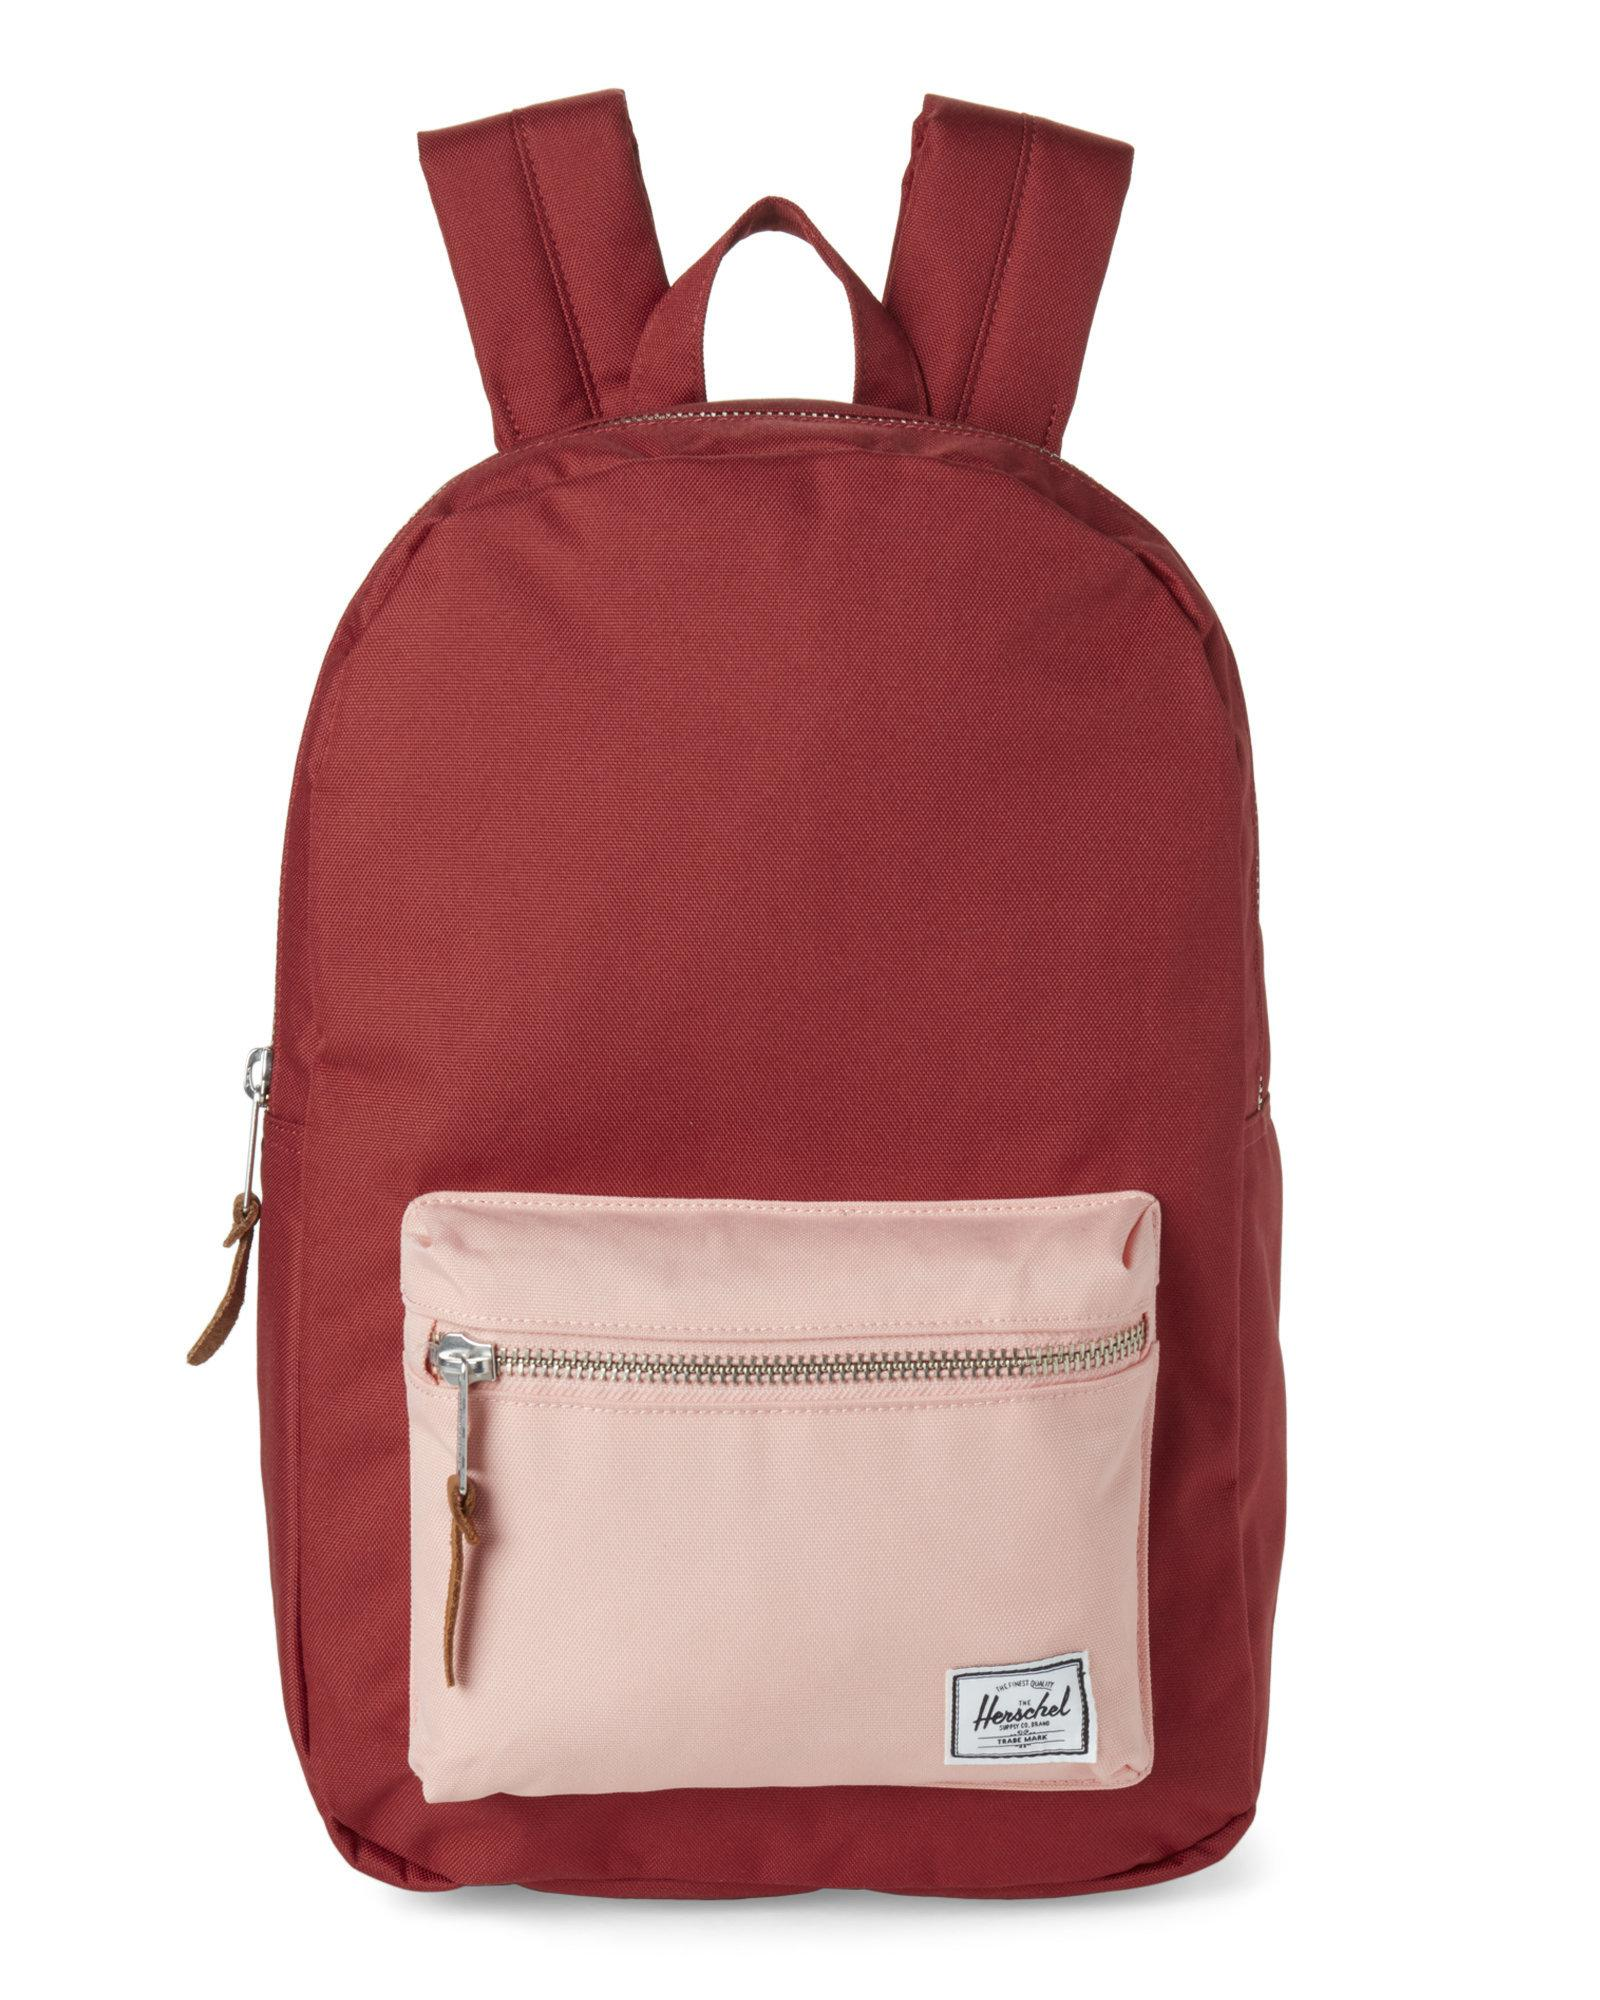 Lyst - Herschel Supply Co. Brick Peach Settlement Mid Backpack in Red cb5eedde12970